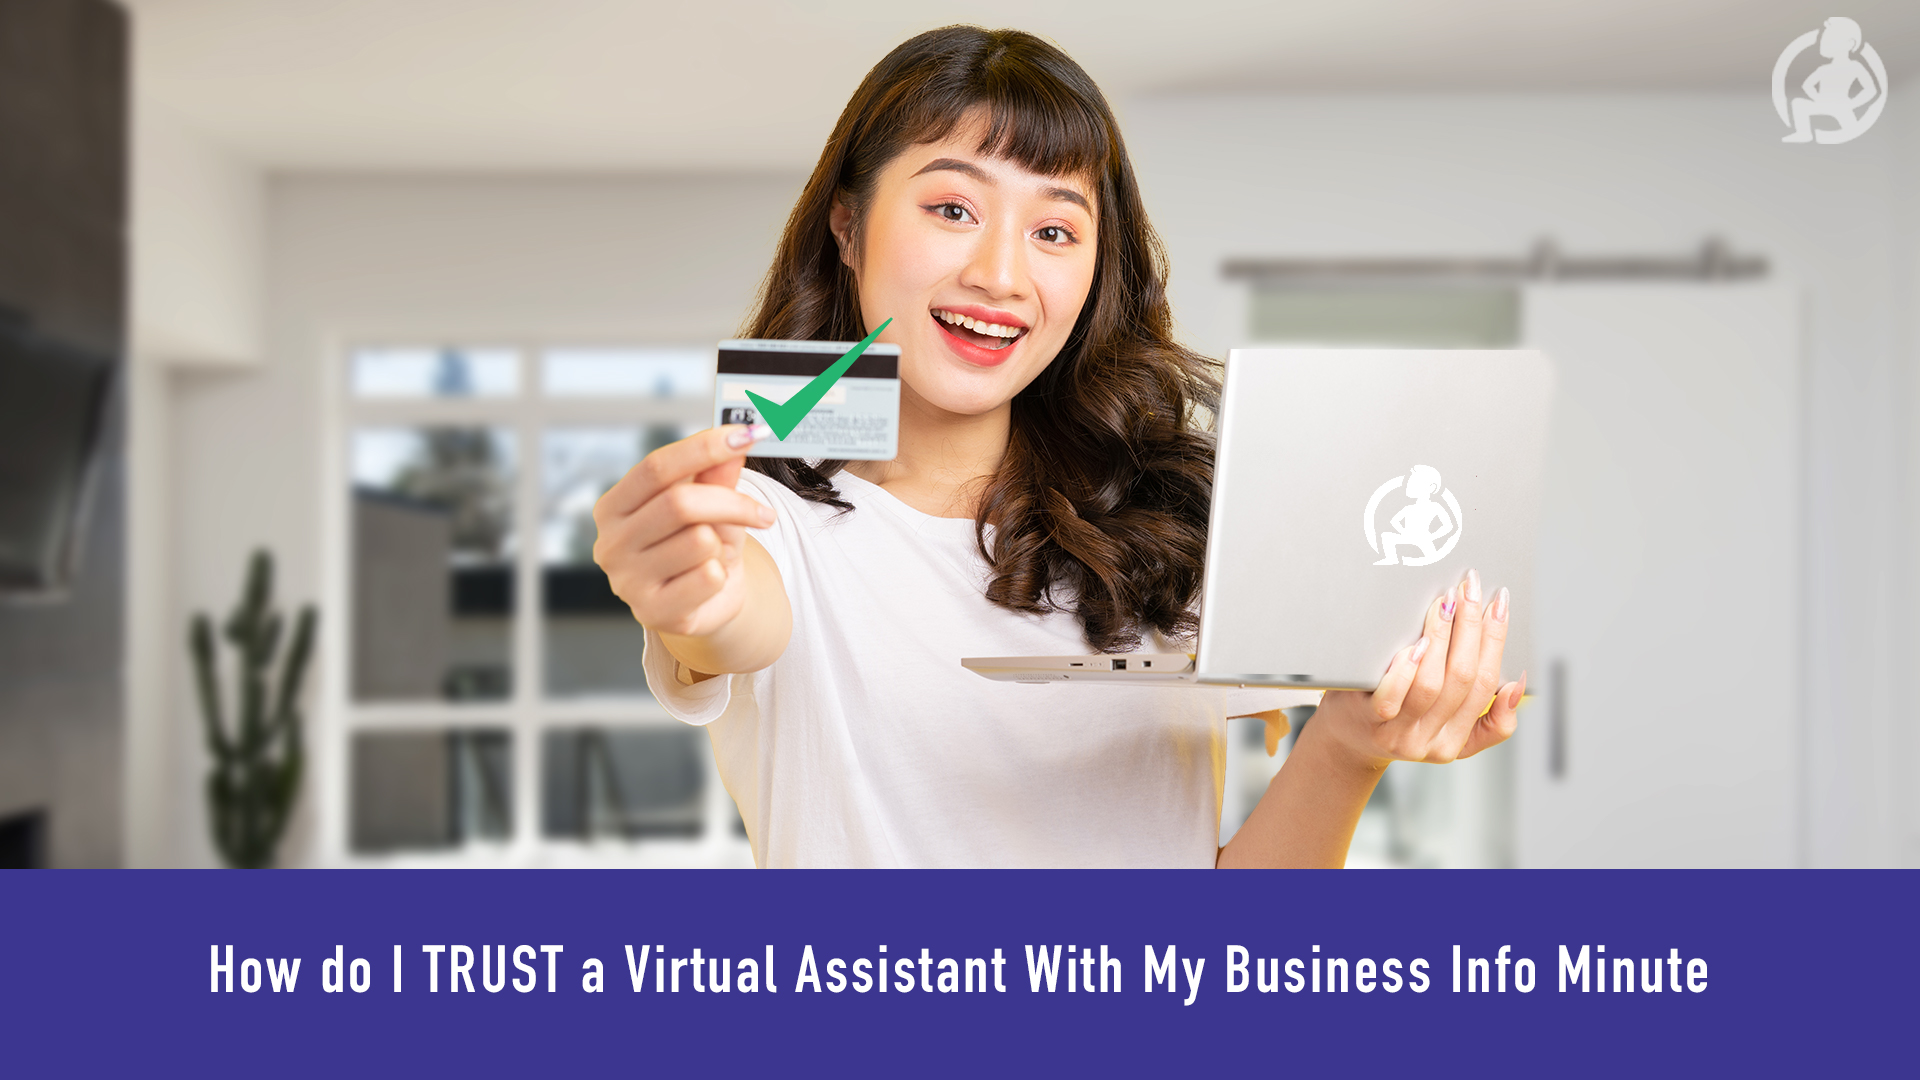 How do I TRUST a Virtual Assistant With My Business Info – Practical Advice